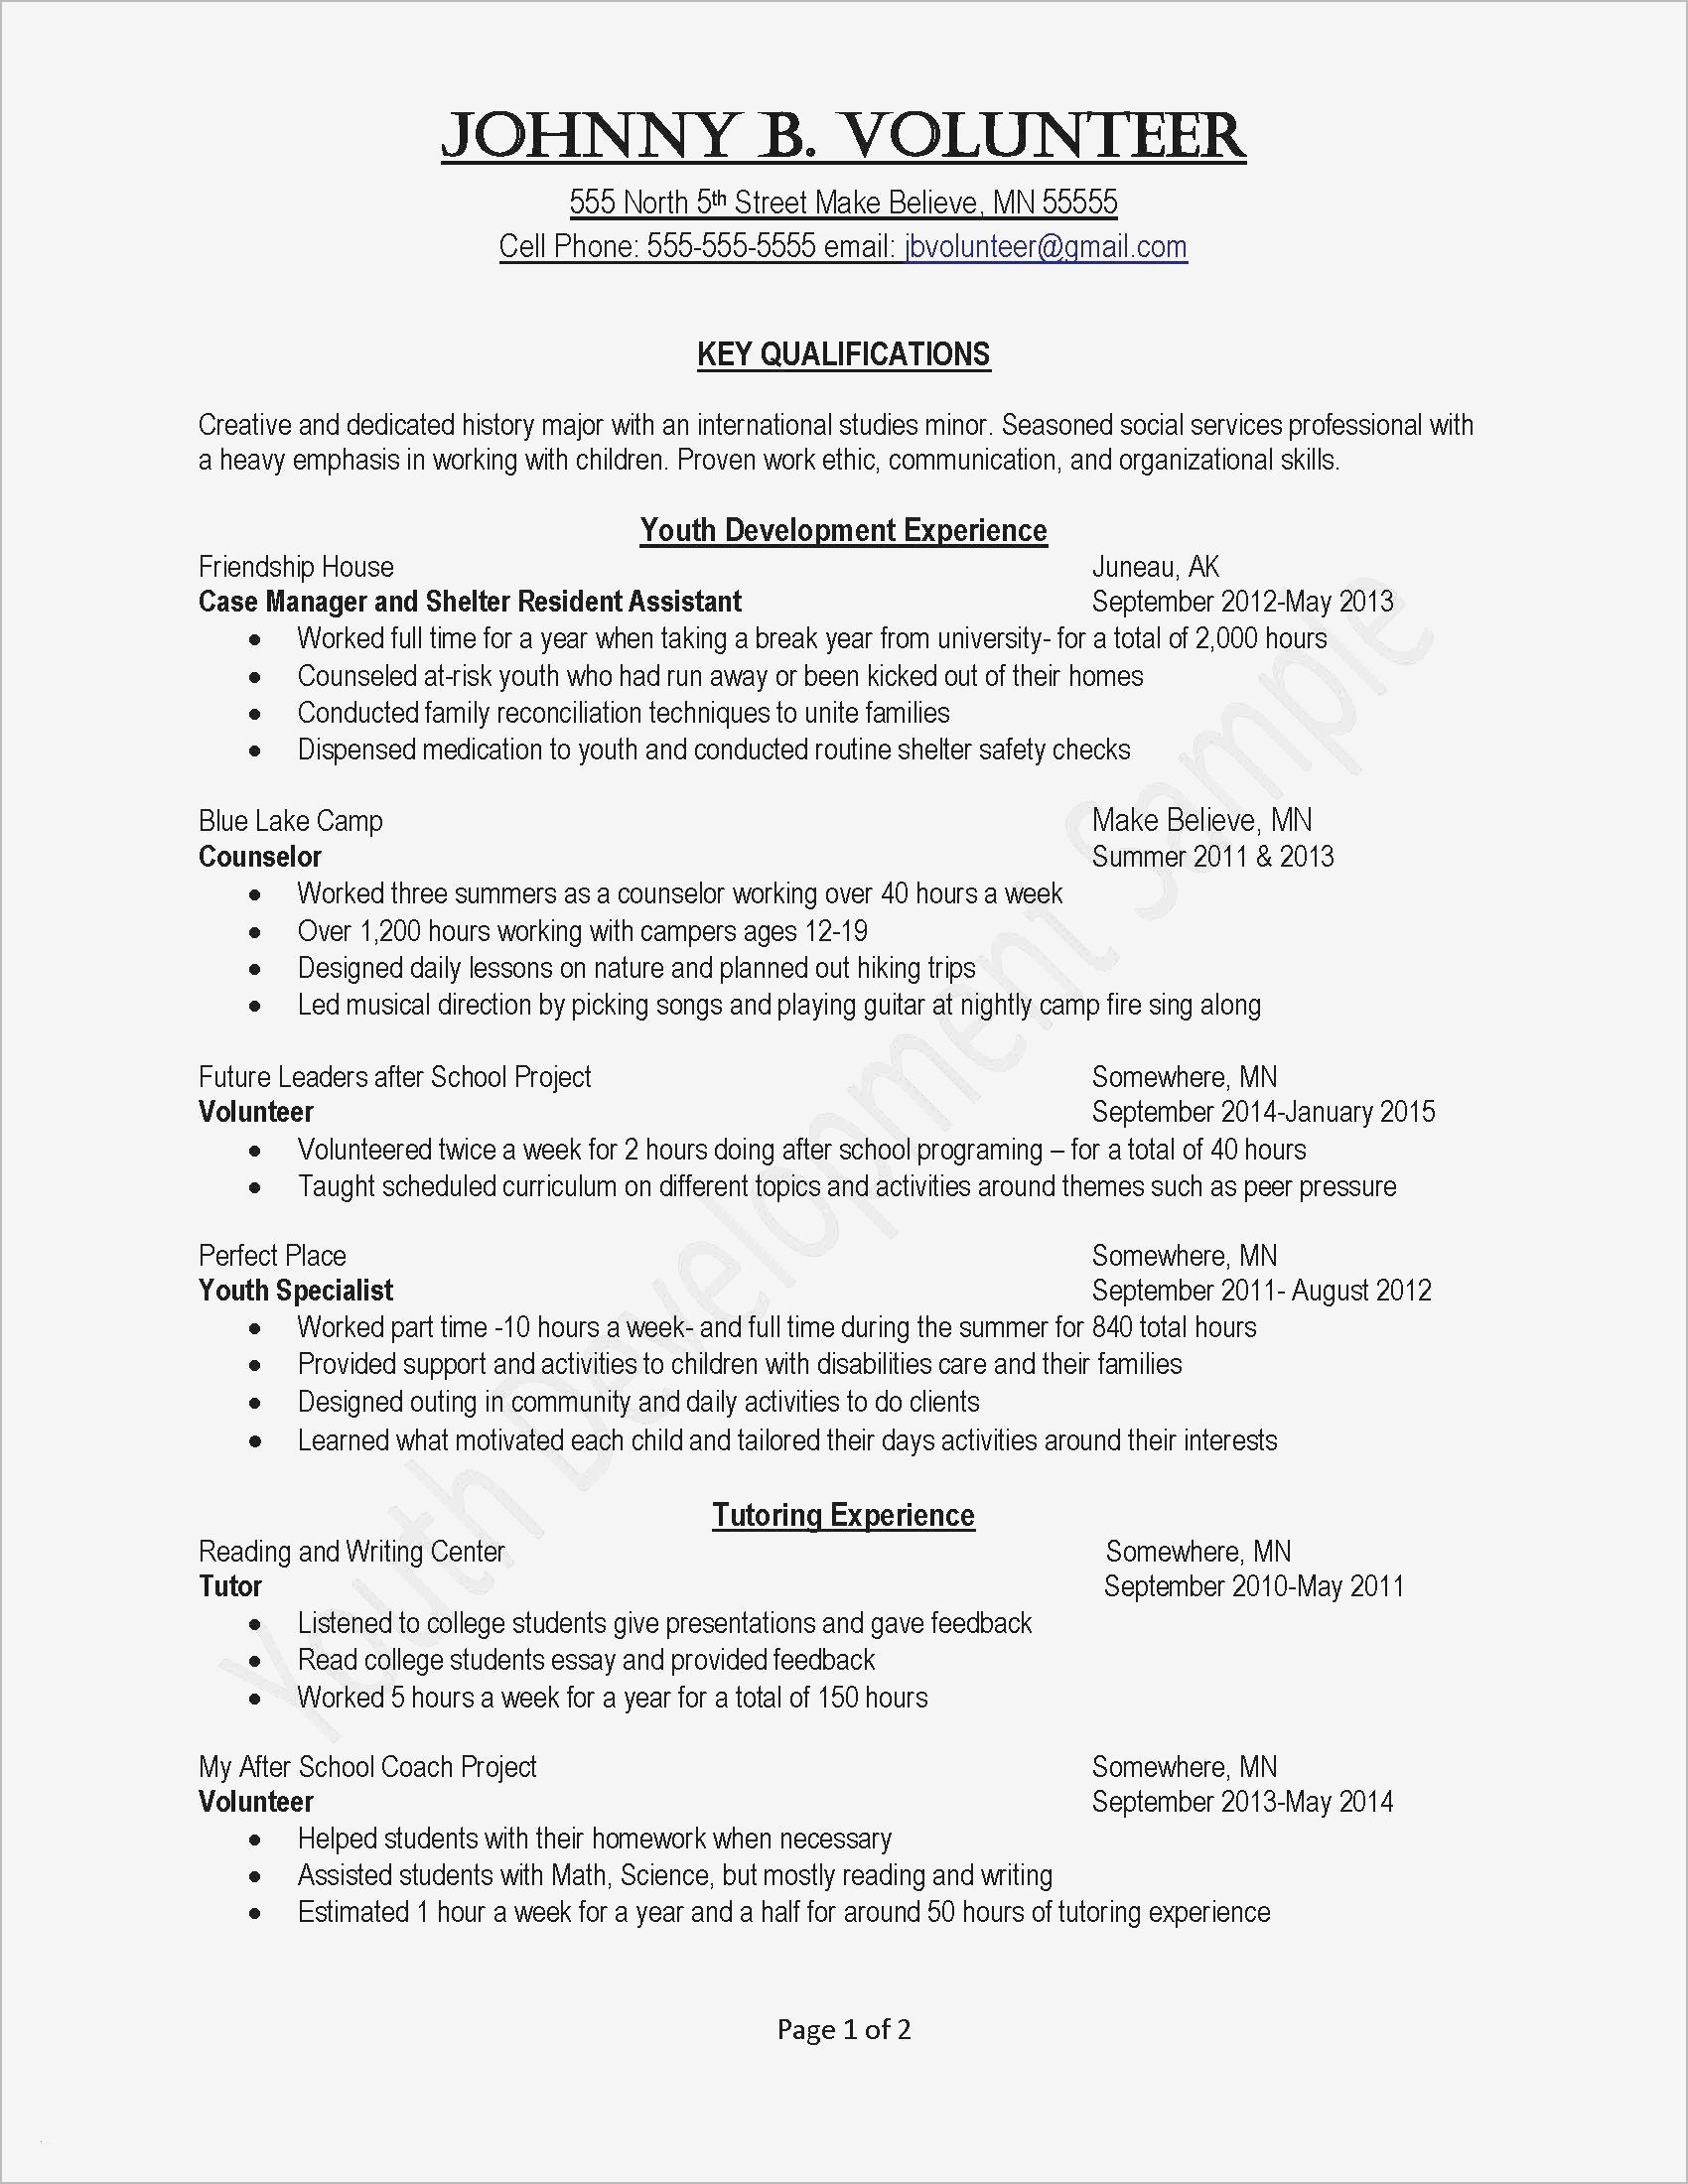 General Cover Letter Template Free - General Resume Template Free Best Job Fer Letter Template Us Copy